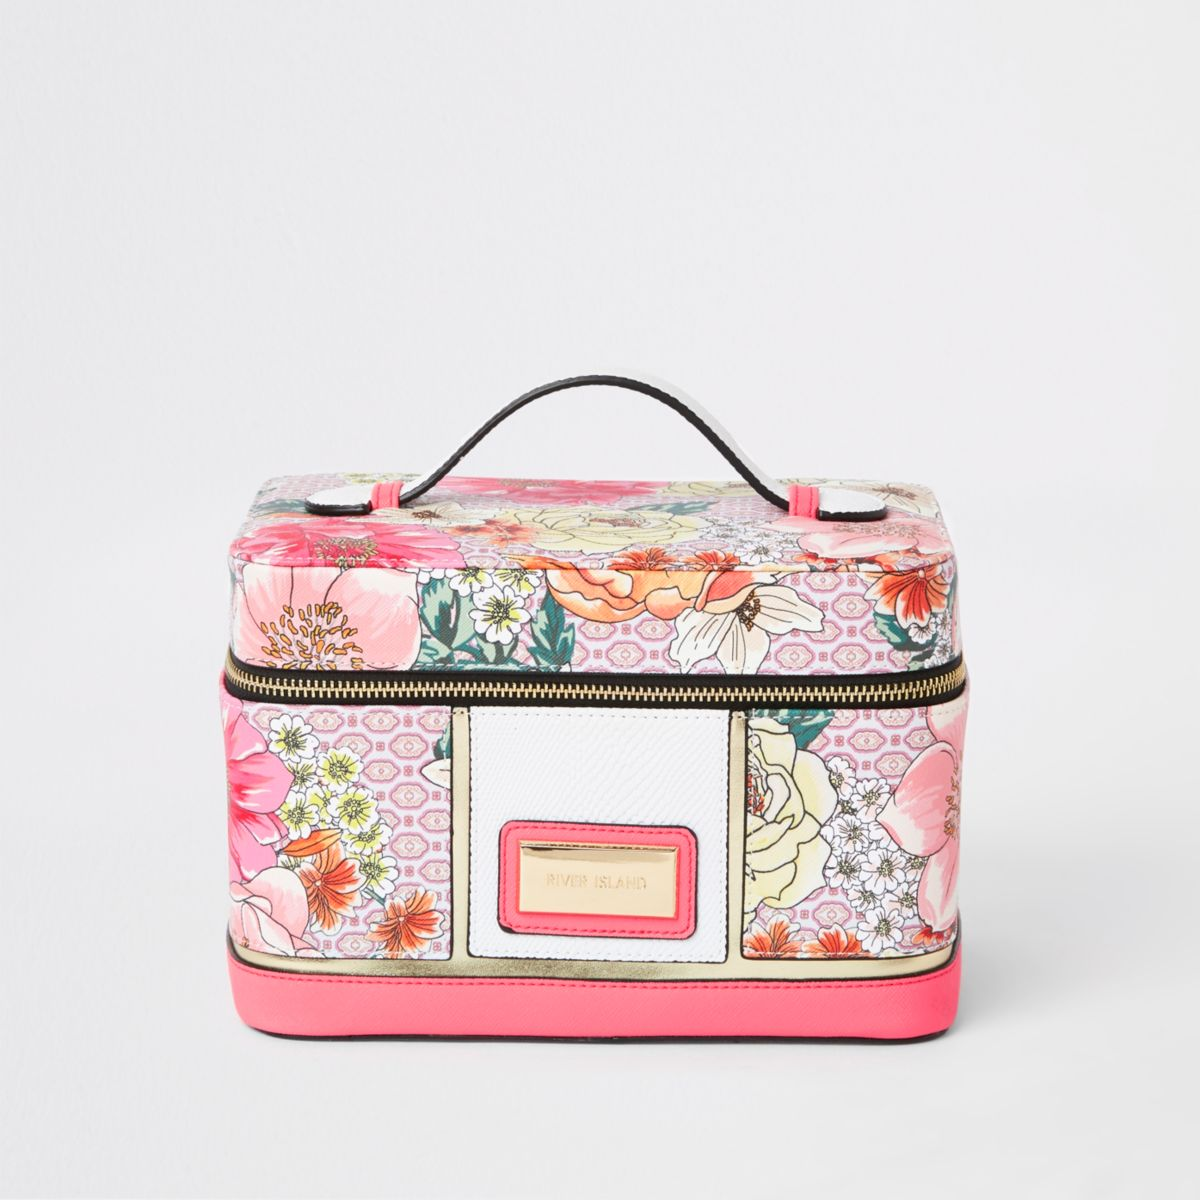 Light pink floral vanity case